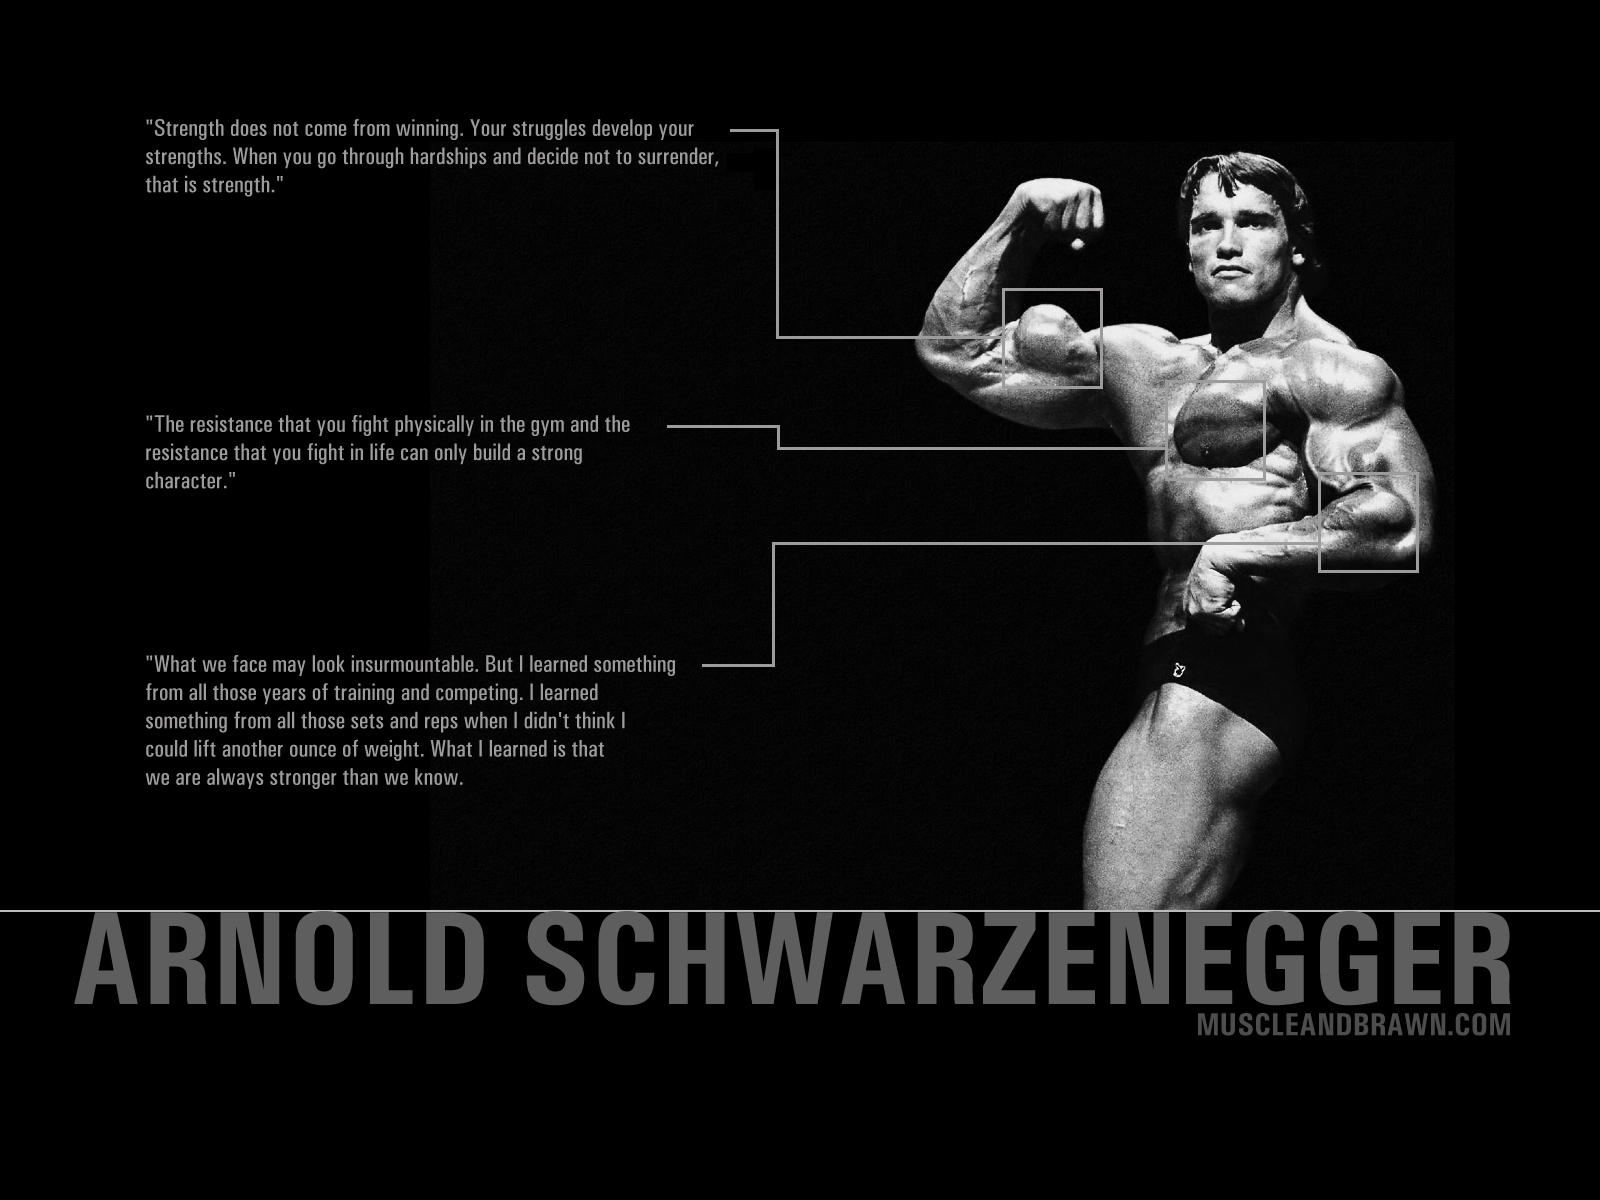 Bodybuilding Amazing HD Wallpapers High Resolution